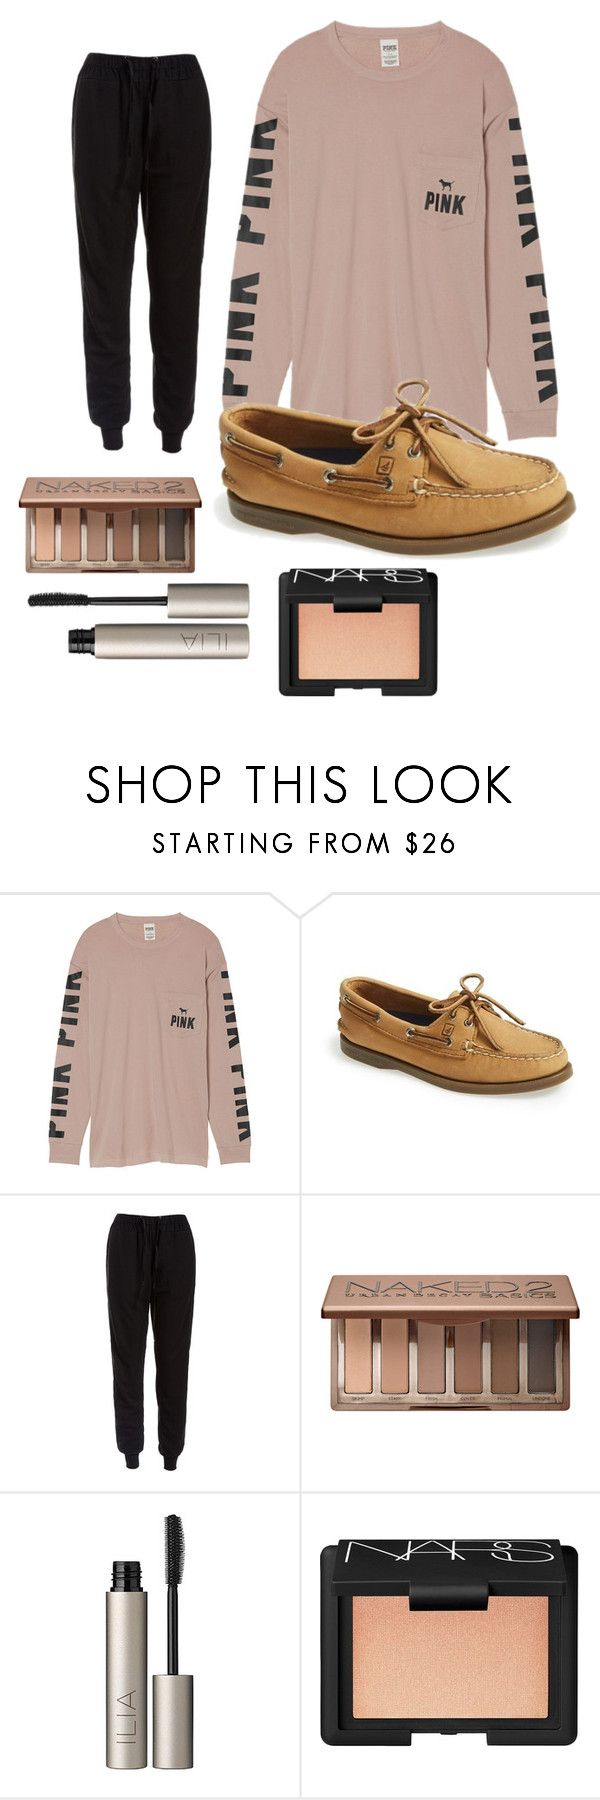 """chilled mall outfit"" by madelynoneill ❤ liked on Polyvore featuring Victoria's Secret, Sperry, Sans Souci, Urban Decay, Ilia and NARS Cosmetics"